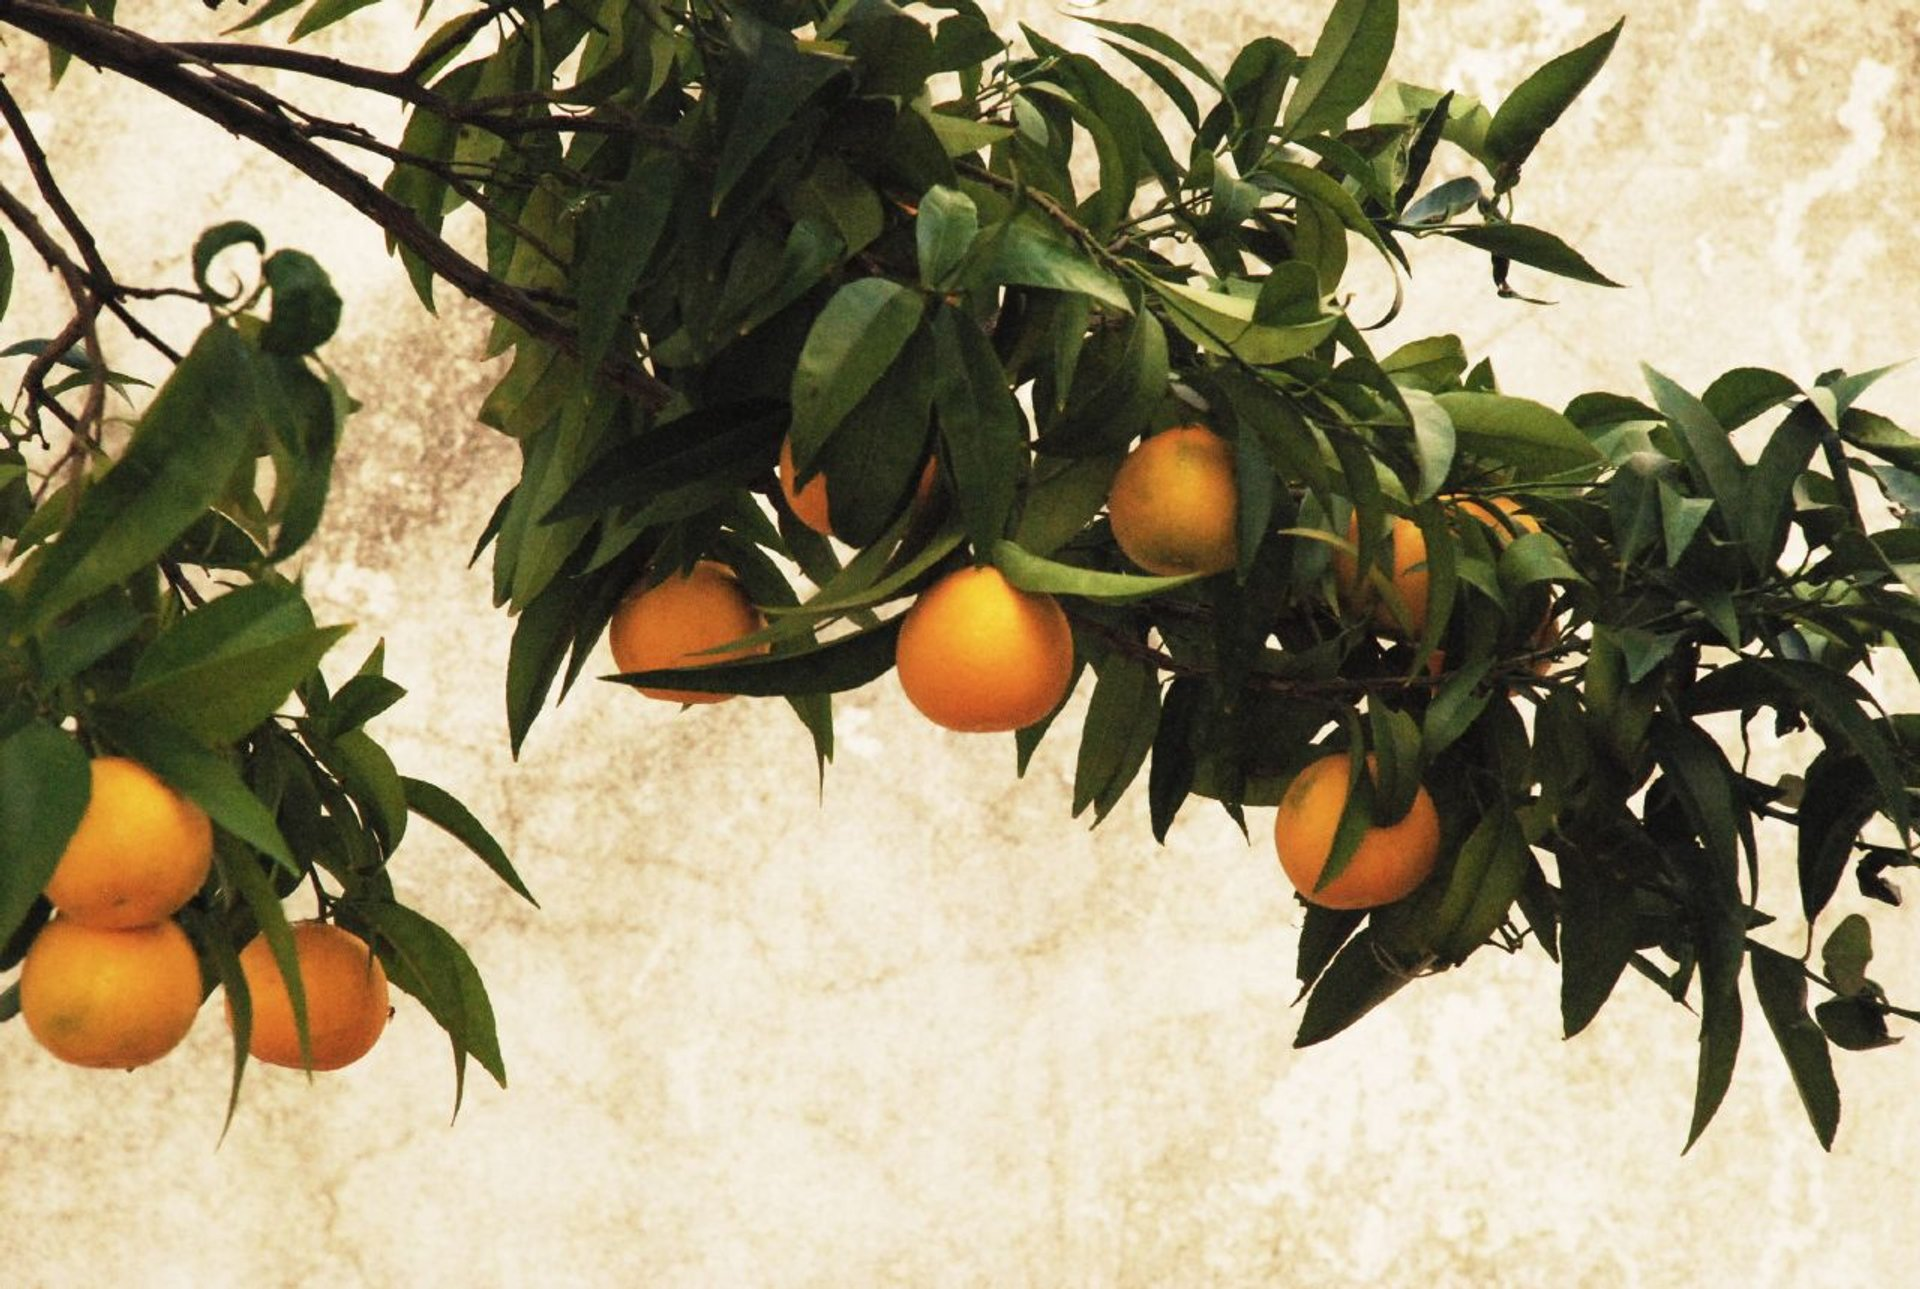 Best time for Orange Harvest in Portugal